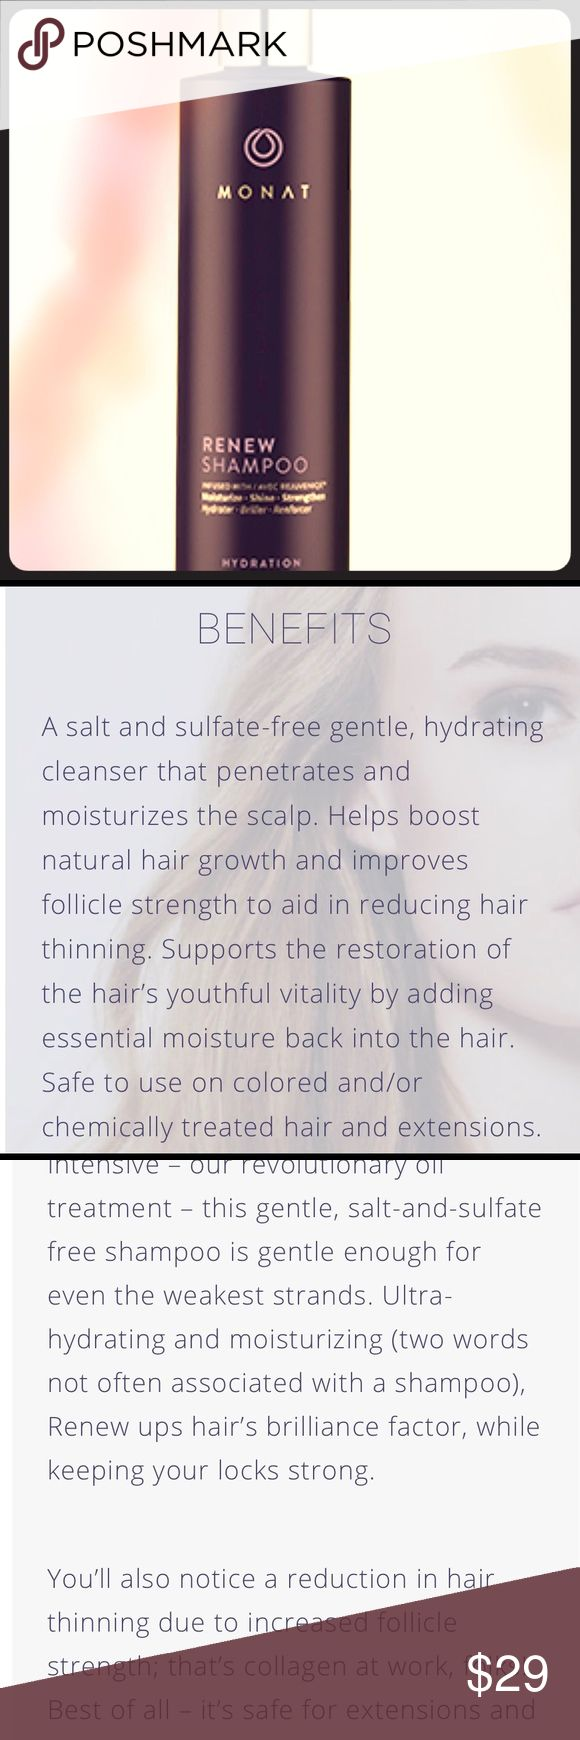 MONAT RENEW Shampoo 9.6oz NEW MONAT is hair care that truly cares for your hair. Monat creators combined active botanical ingredients with state-of-the-art scientific technologies to deliver naturally based products that address the effects of the environment, chemicals, product overuse and — most importantly — hair thinning, hair loss and aging. (Taken from Monatglobal.com) - Made in USA 🇺🇸 only Anti-Aging Hair Care Line MONAT Other